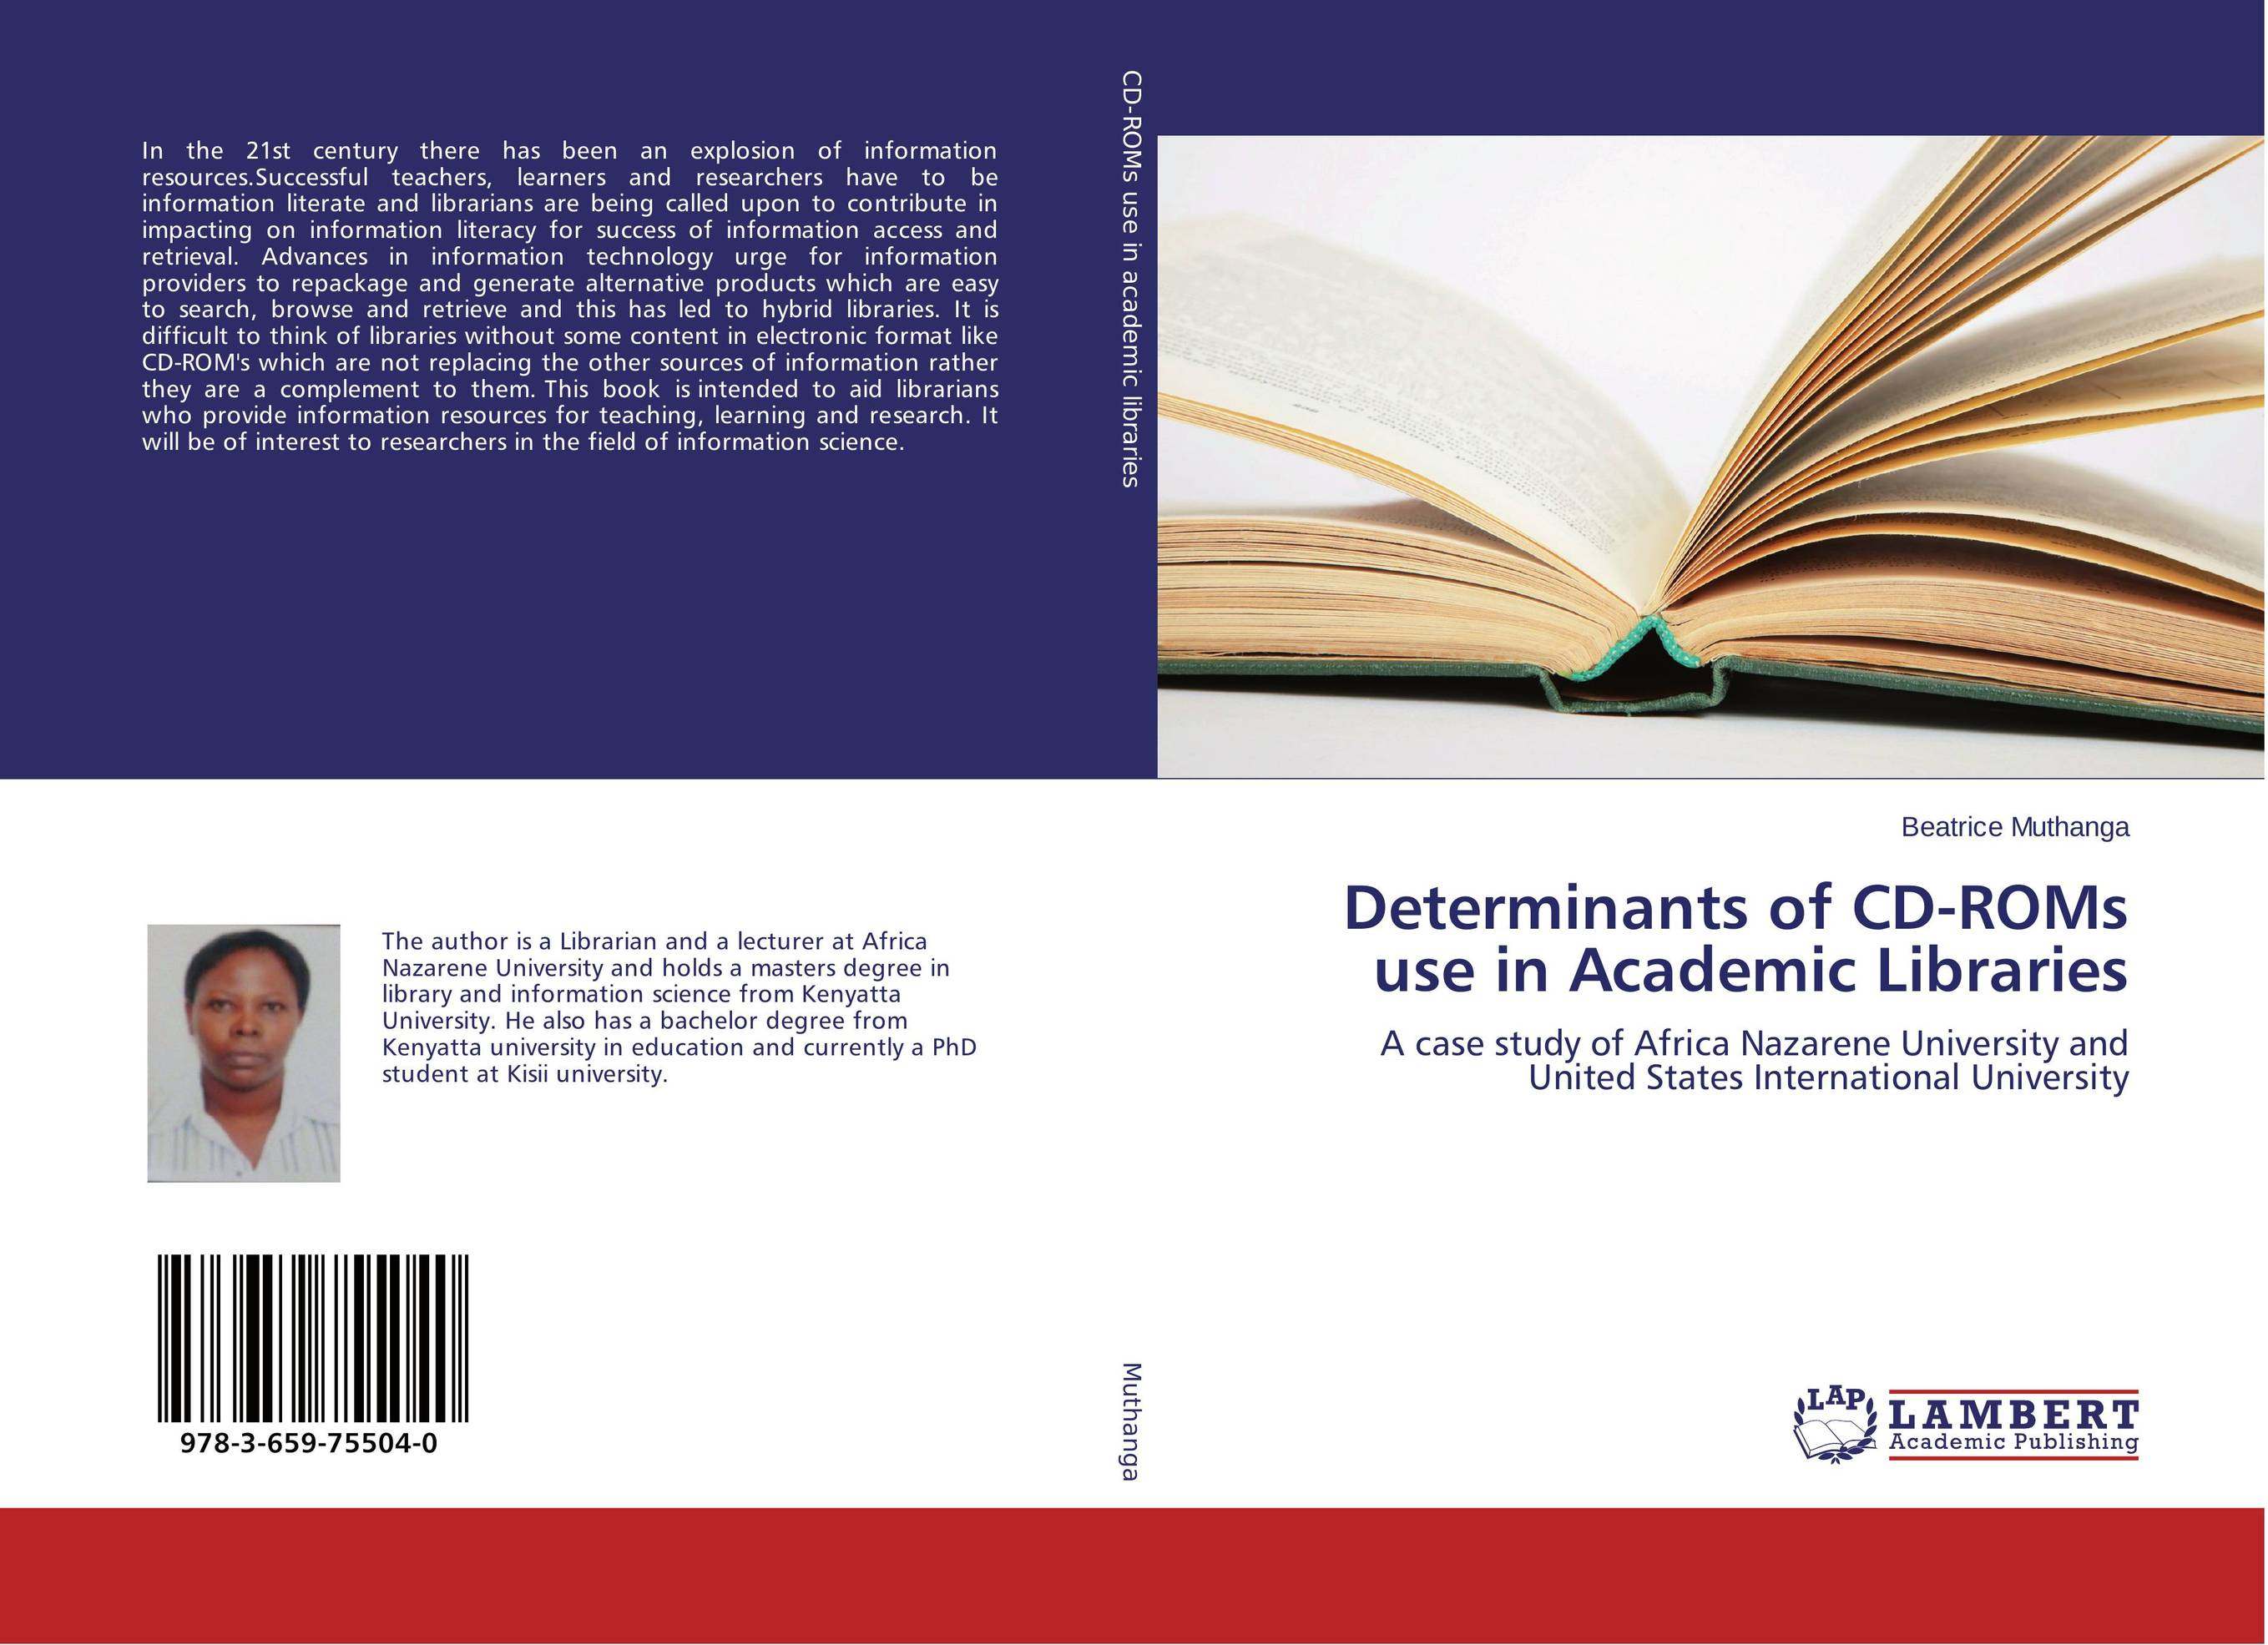 Determinants of CD-ROMs use in Academic Libraries designing of an information retrieval system in veterinary science